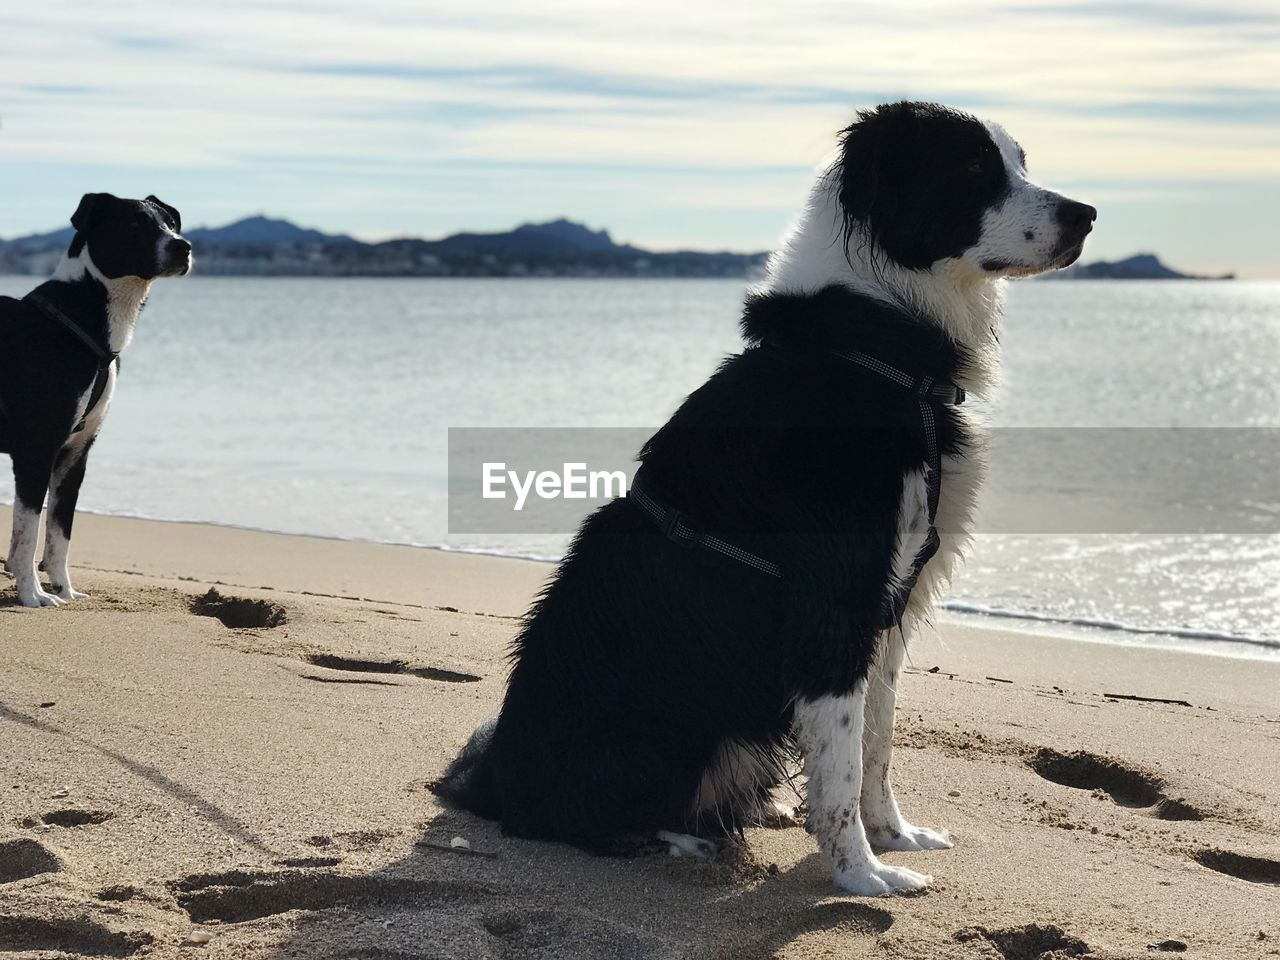 pets, domestic animals, domestic, dog, canine, mammal, animal, animal themes, one animal, water, sea, vertebrate, beach, land, sky, nature, sand, looking, looking away, no people, outdoors, border collie